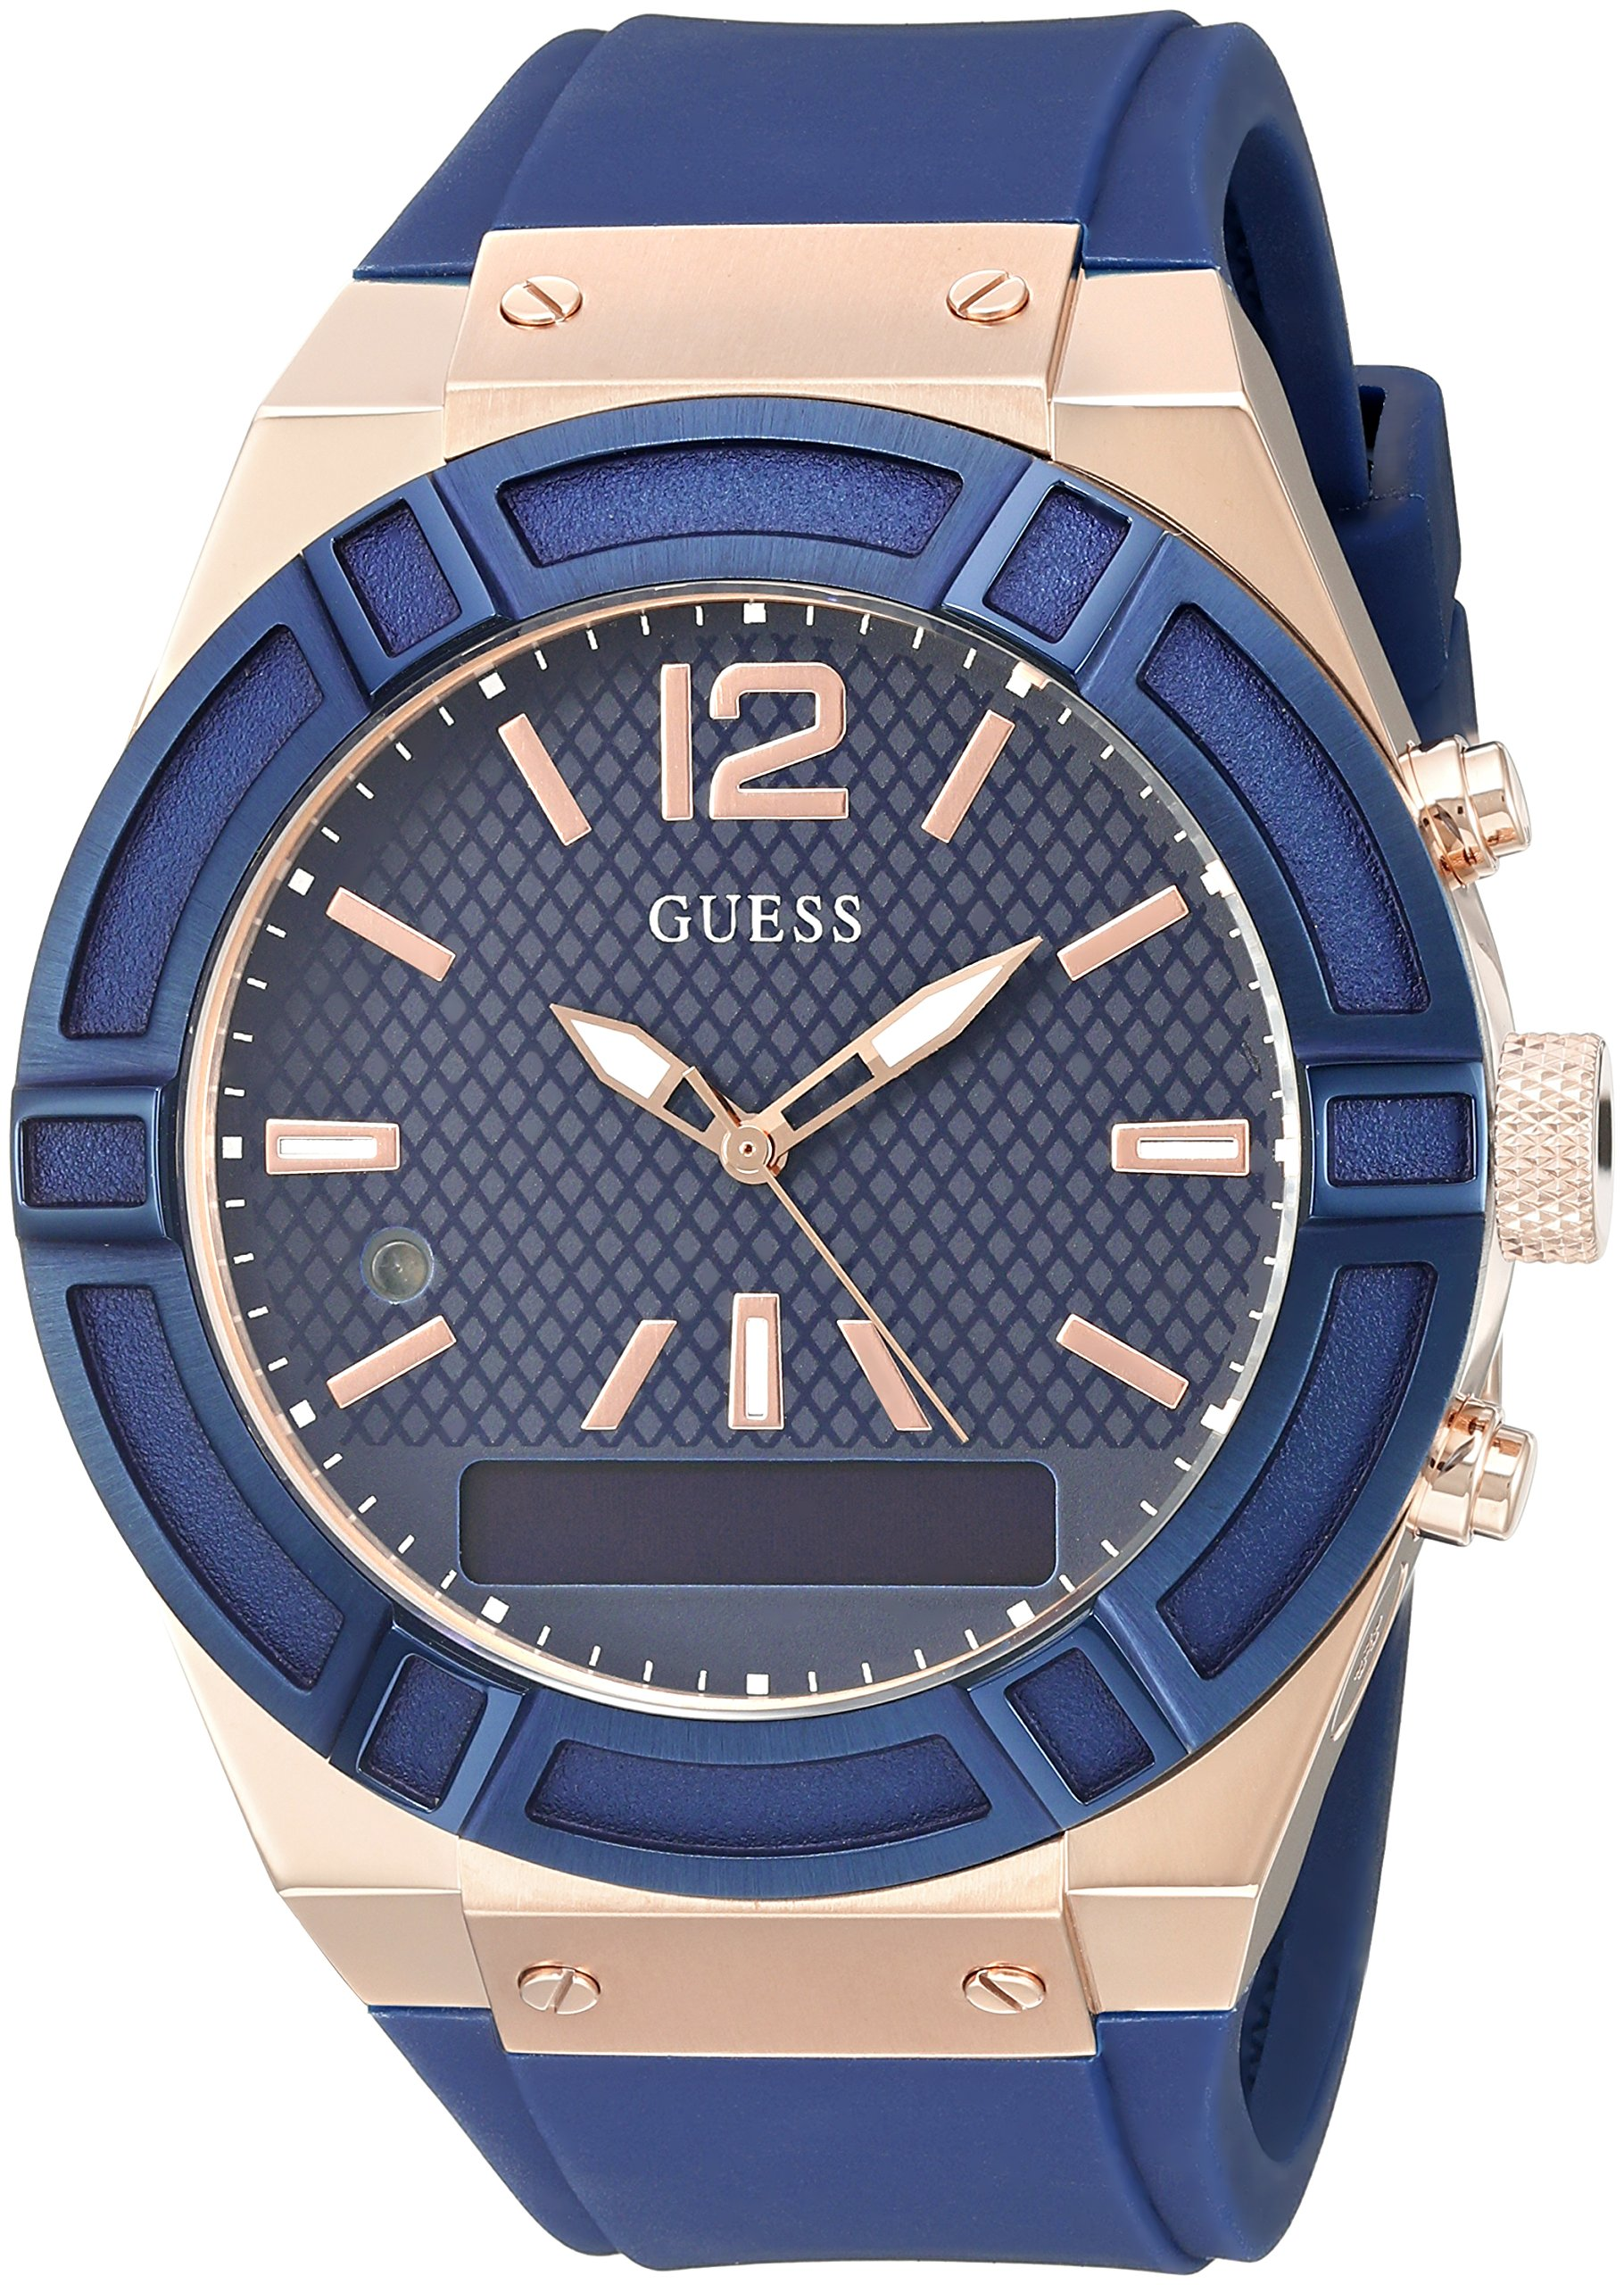 GUESS Men's Stainless Steel Connect Smart Watch - Amazon Alexa, iOS and Android Compatible iOS and Android Compatible, Color: Blue (Model: C0001G1) by GUESS